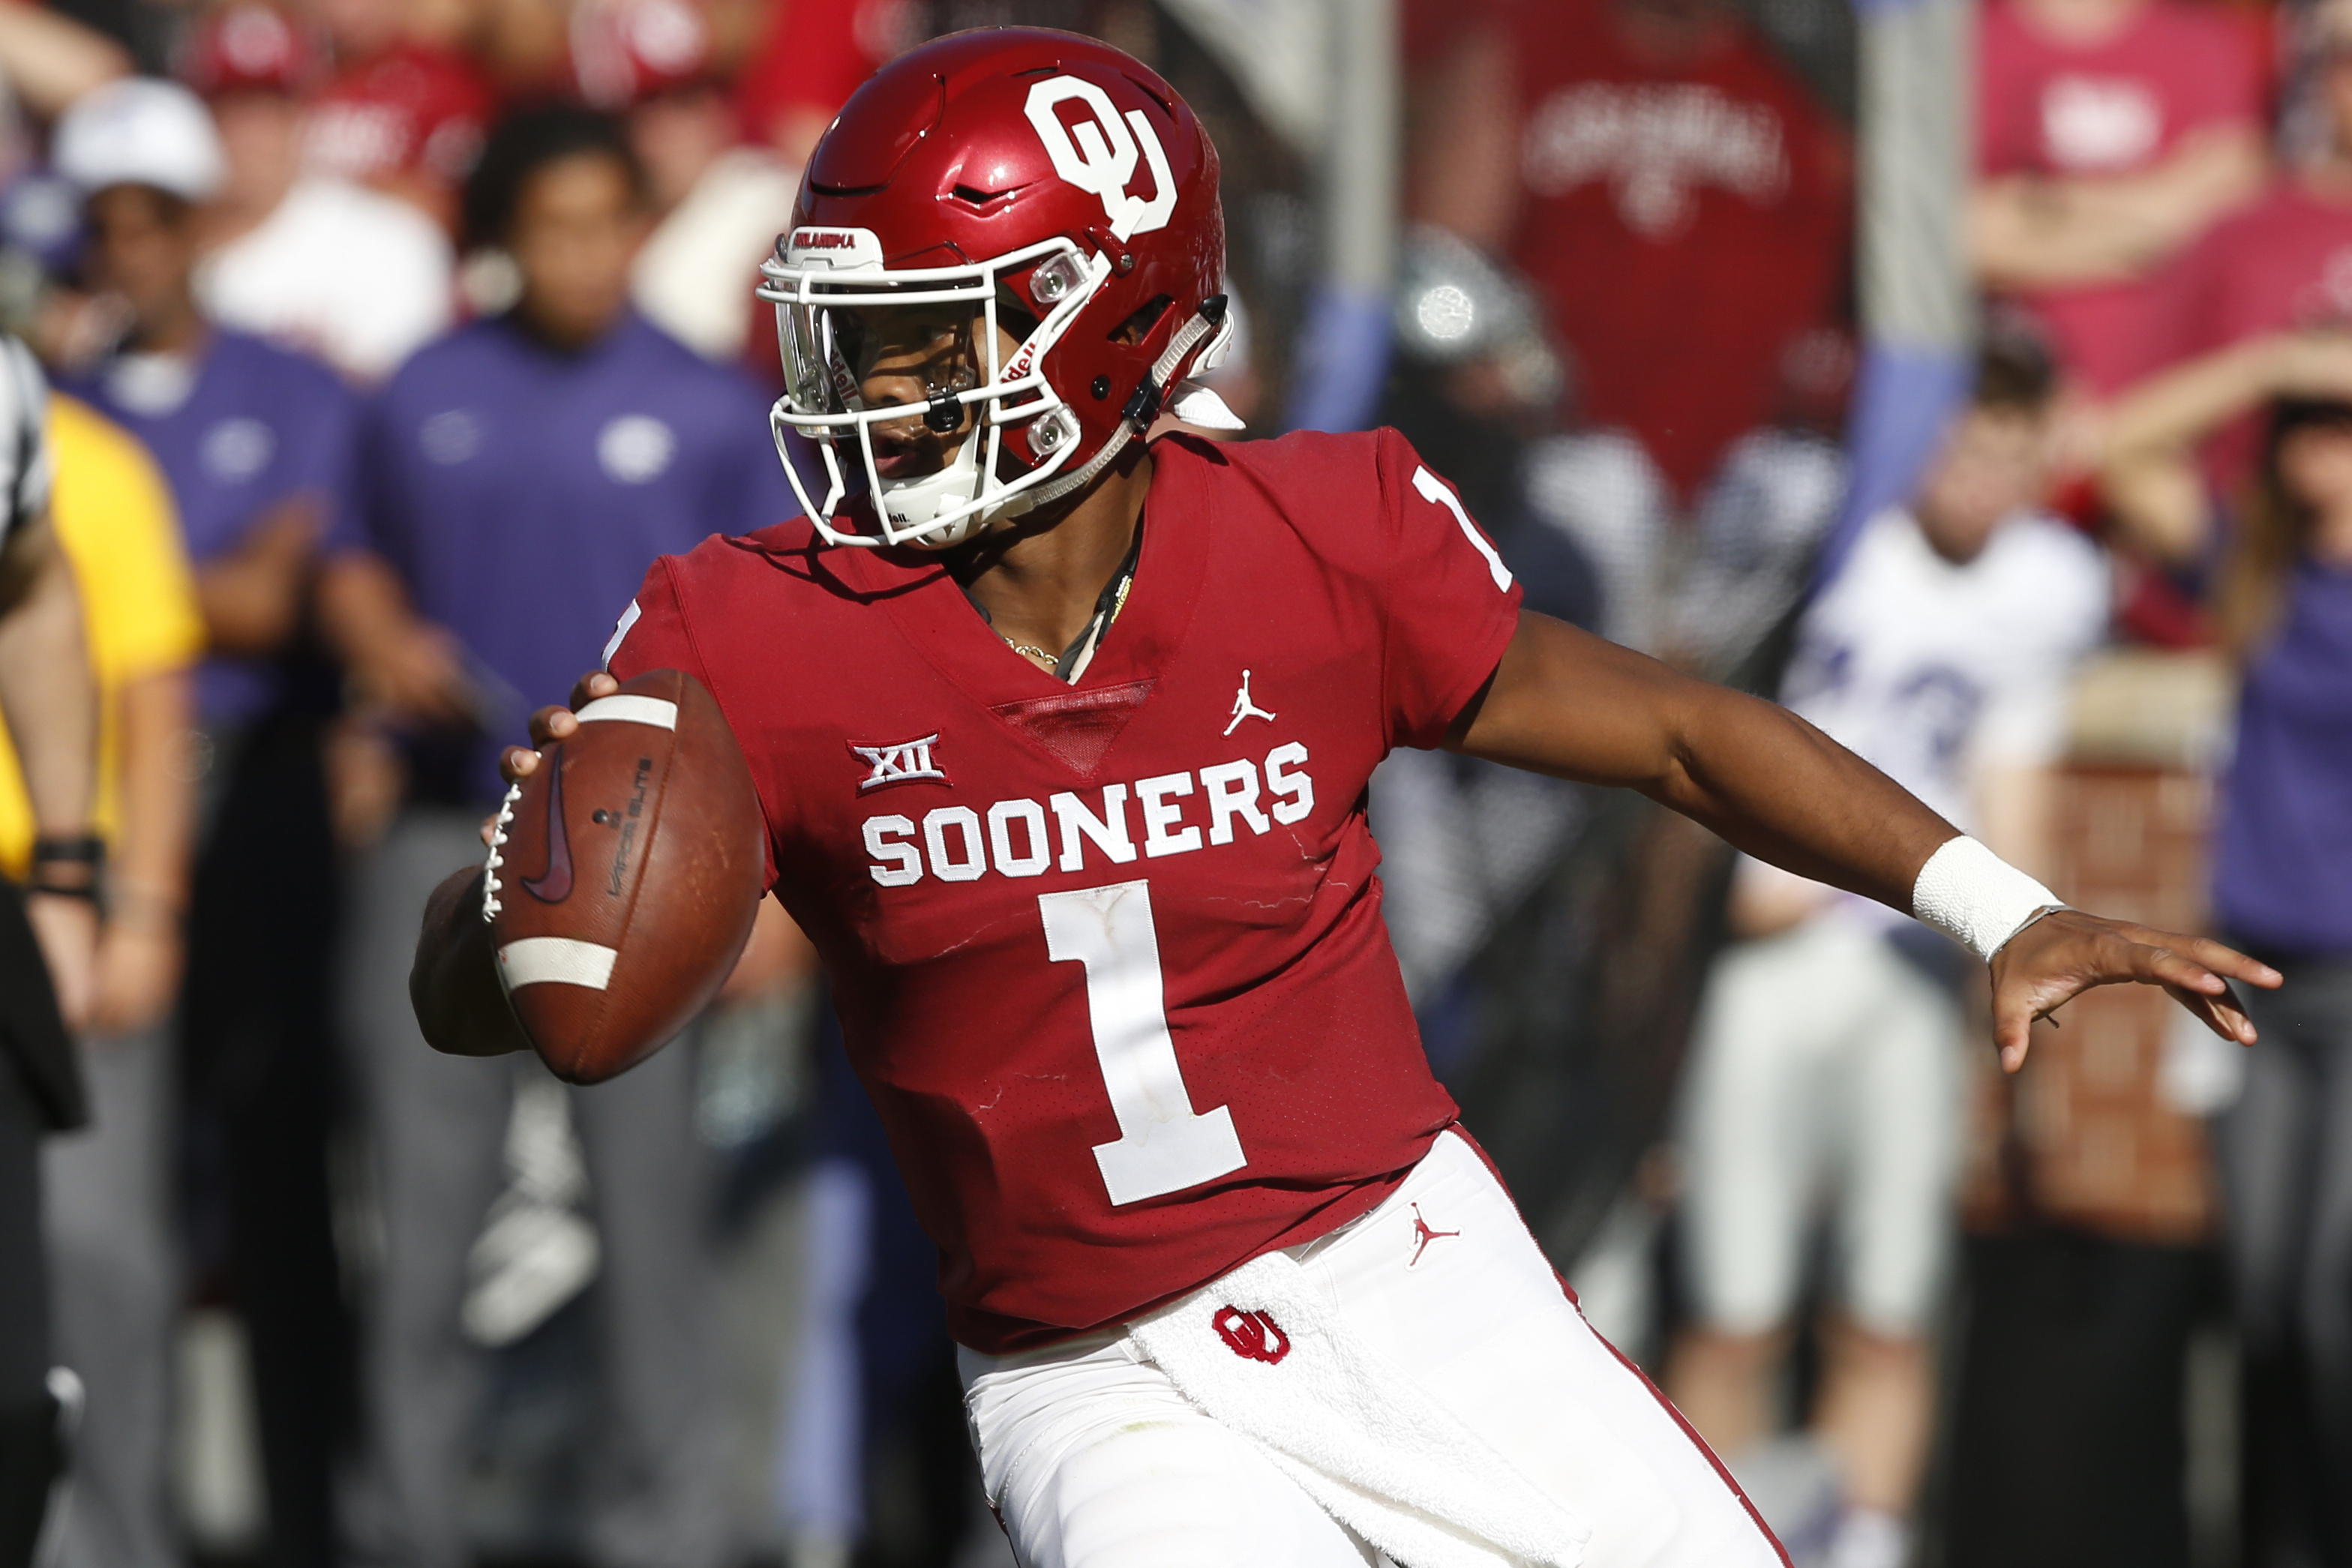 Kyler Murray commits to being NFL QB over baseball, Oakland A's